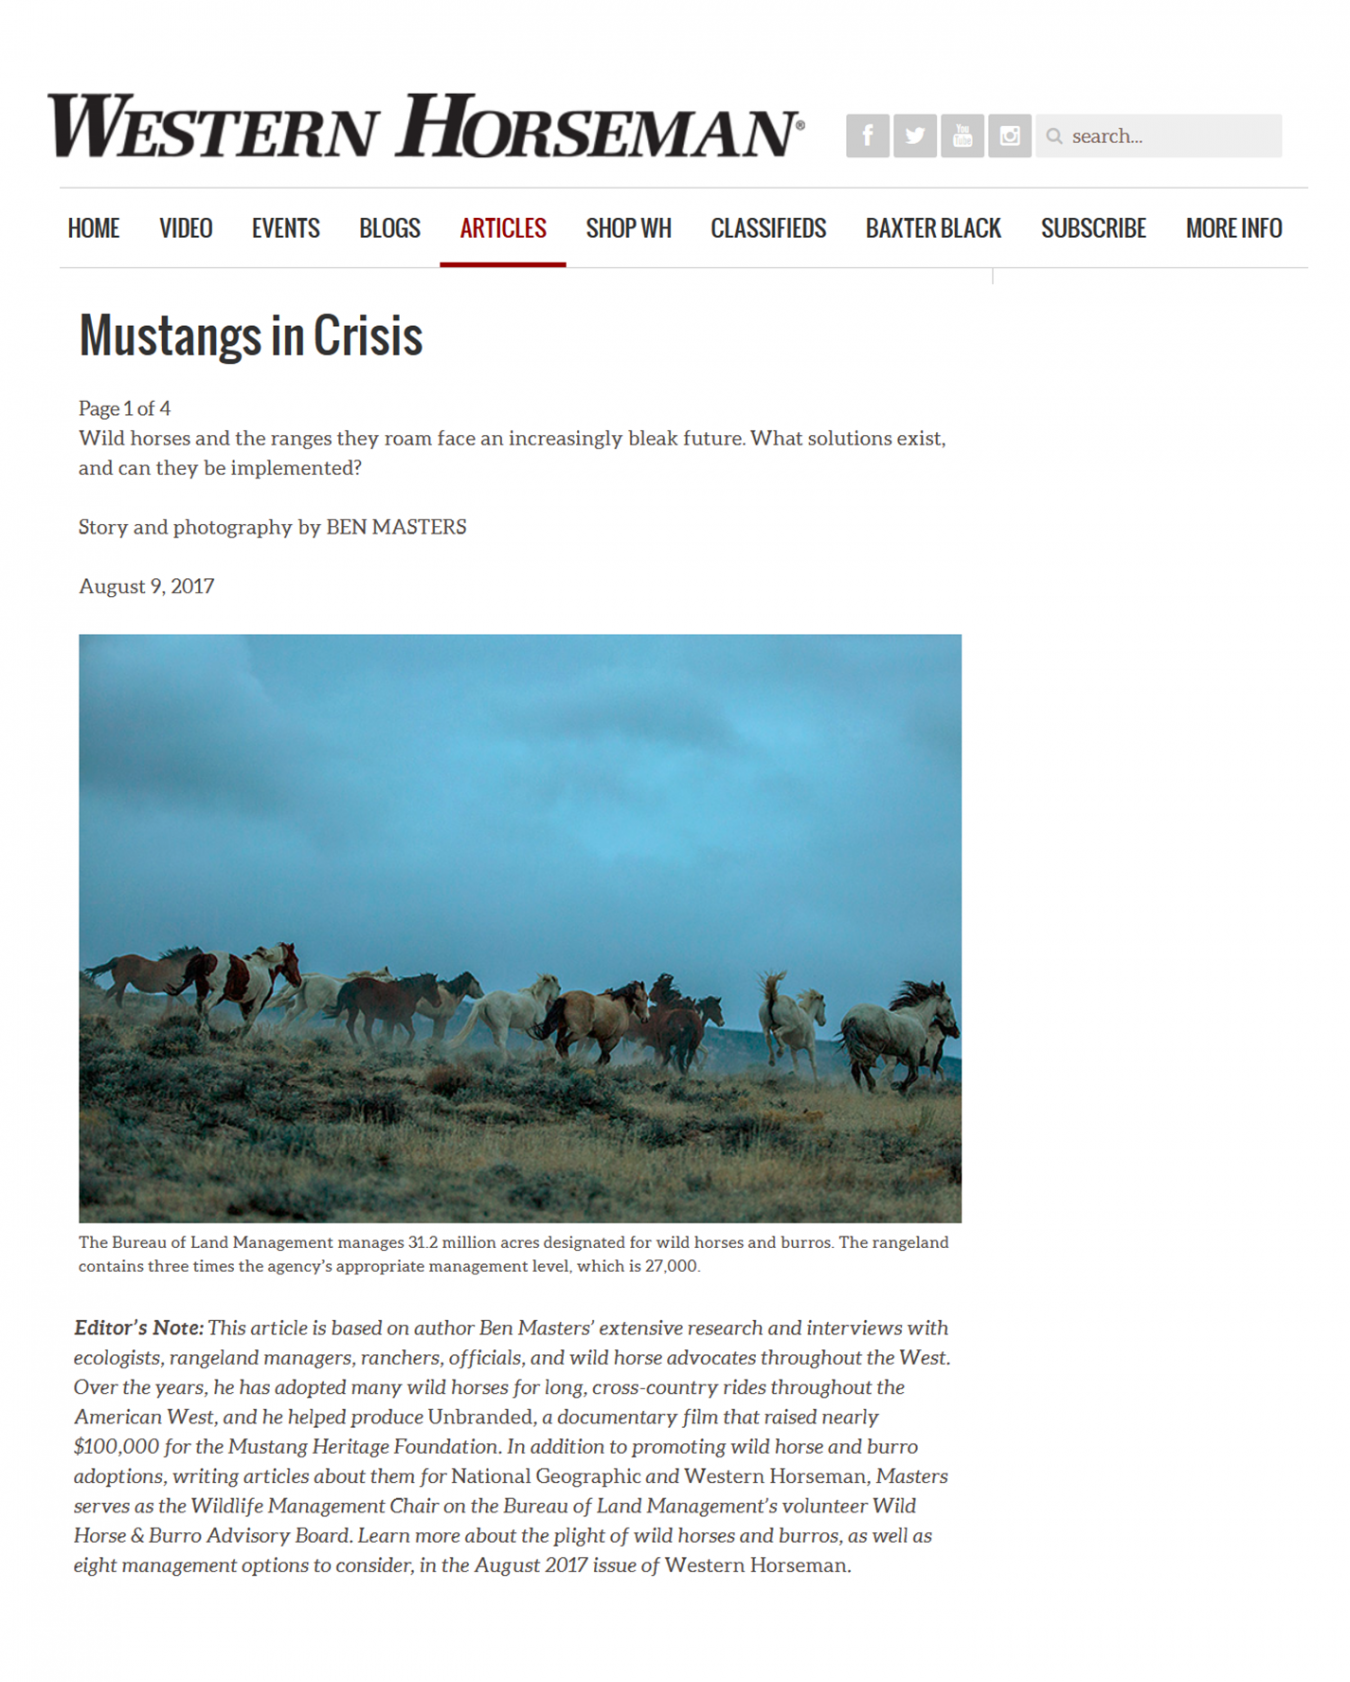 Mustangs In Crisis - Article in Western Horseman Magazine